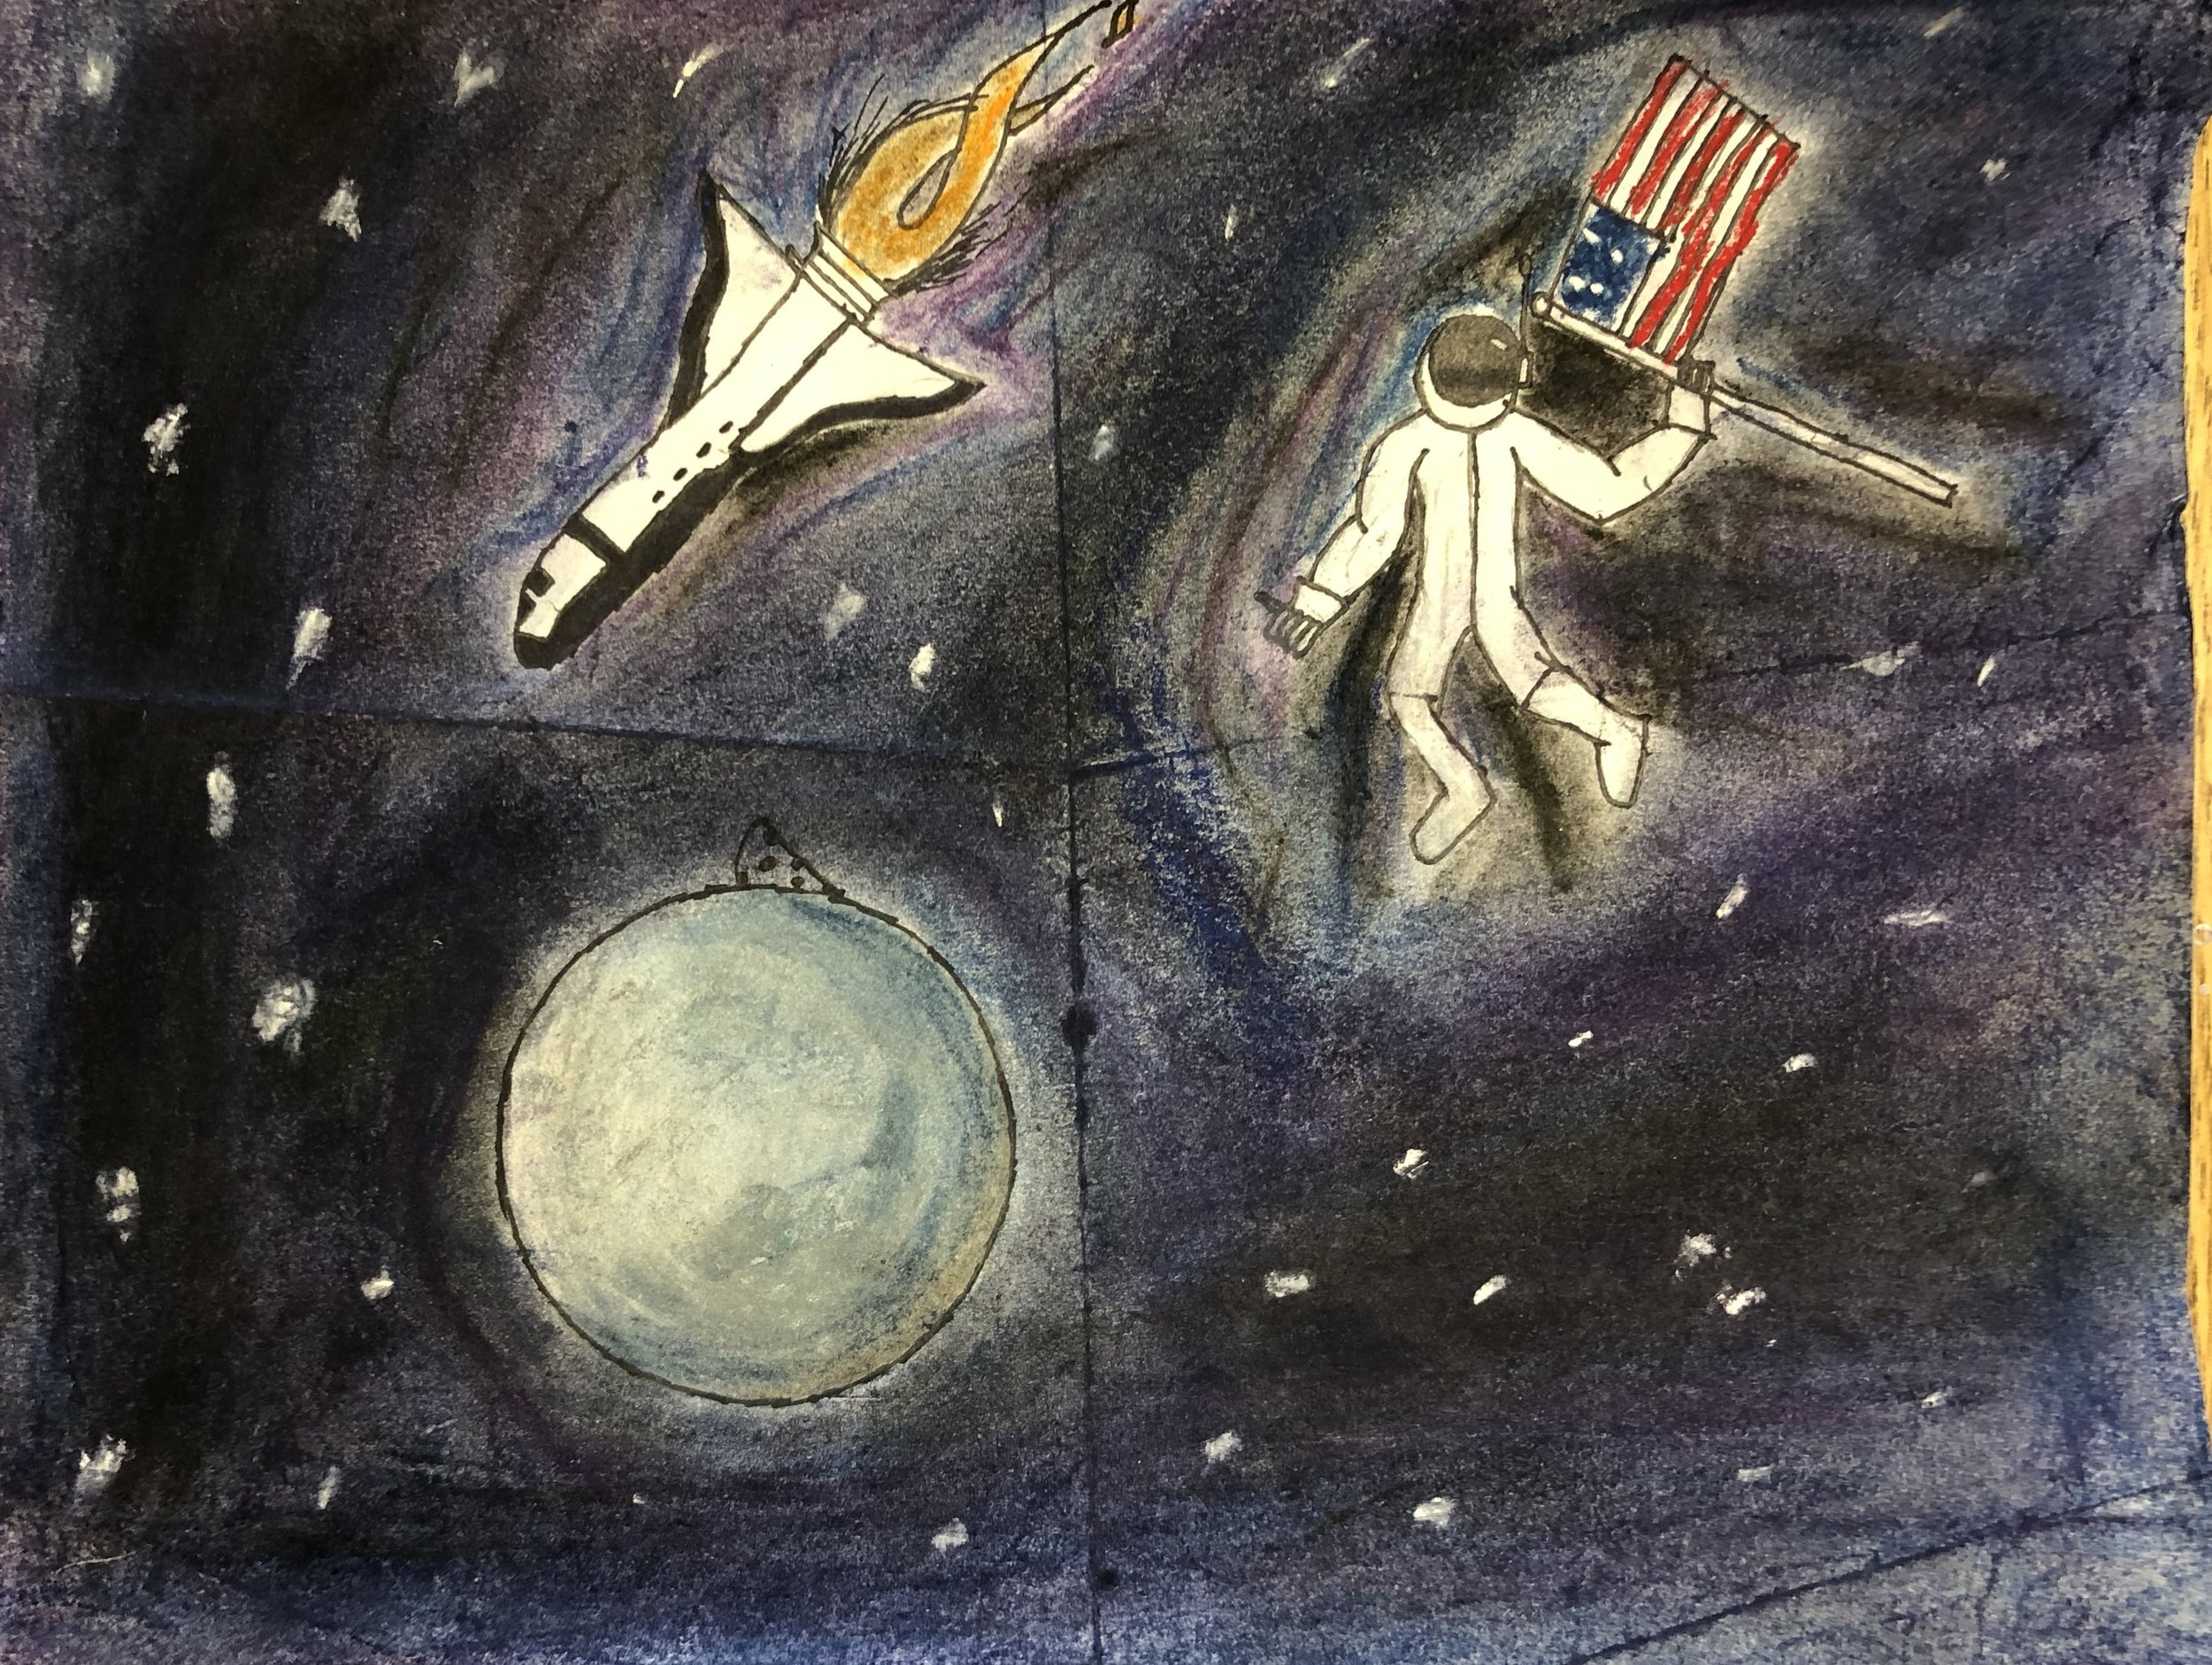 Artwork created by students at Brown Middle School in preparation for an outreach performance on March 1